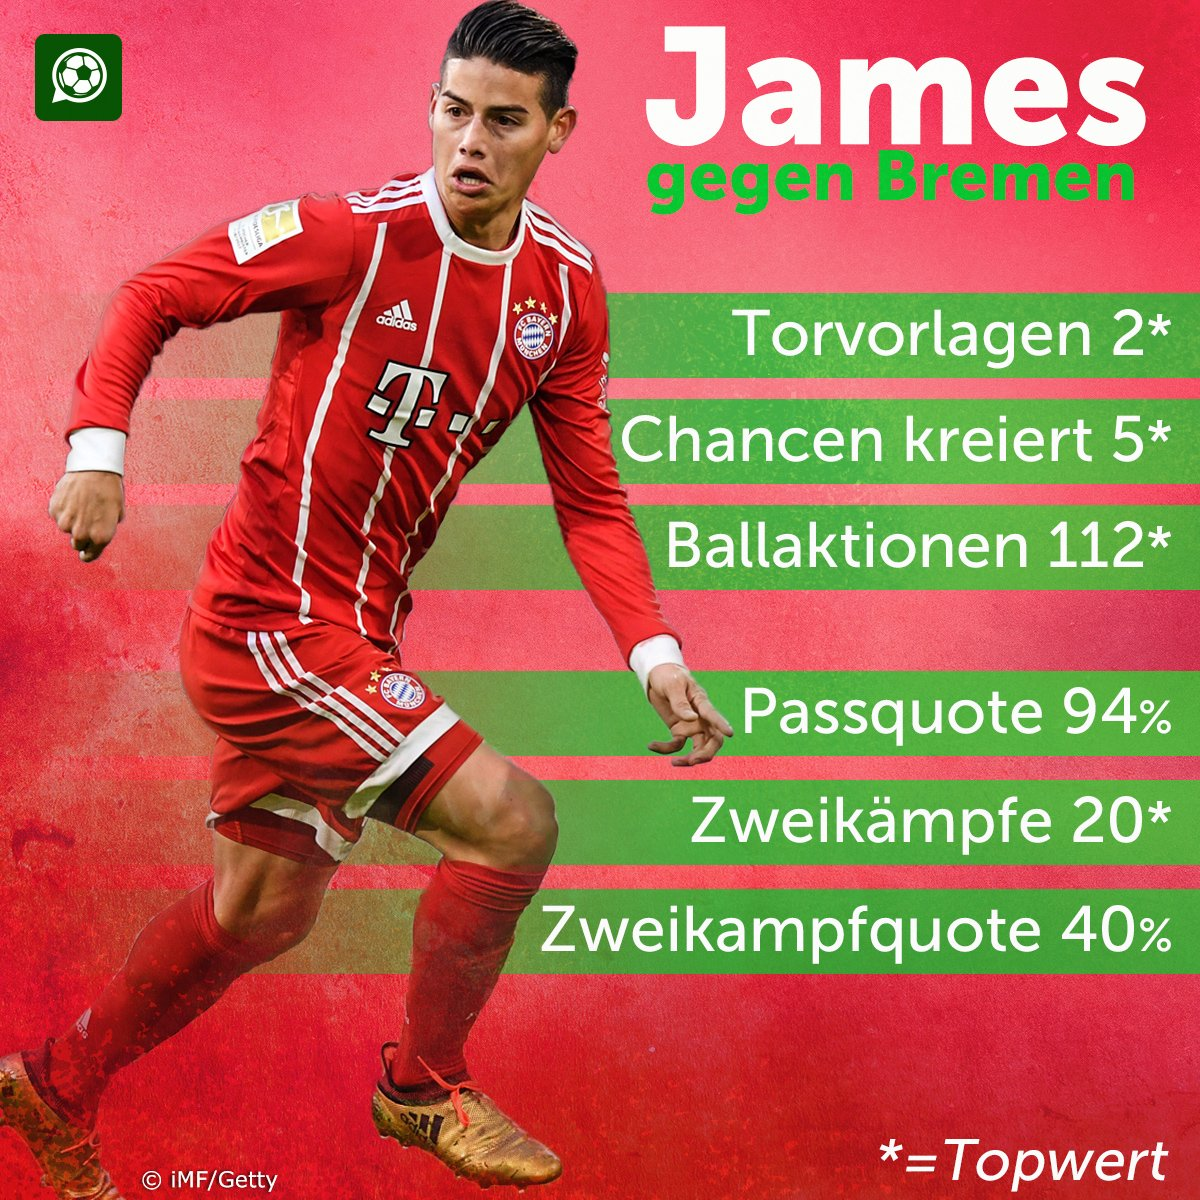 Fromkurve vom Feinsten bei @jamesdrodriguez #James #FCBSVW https://t.co/syO7HJL7UB